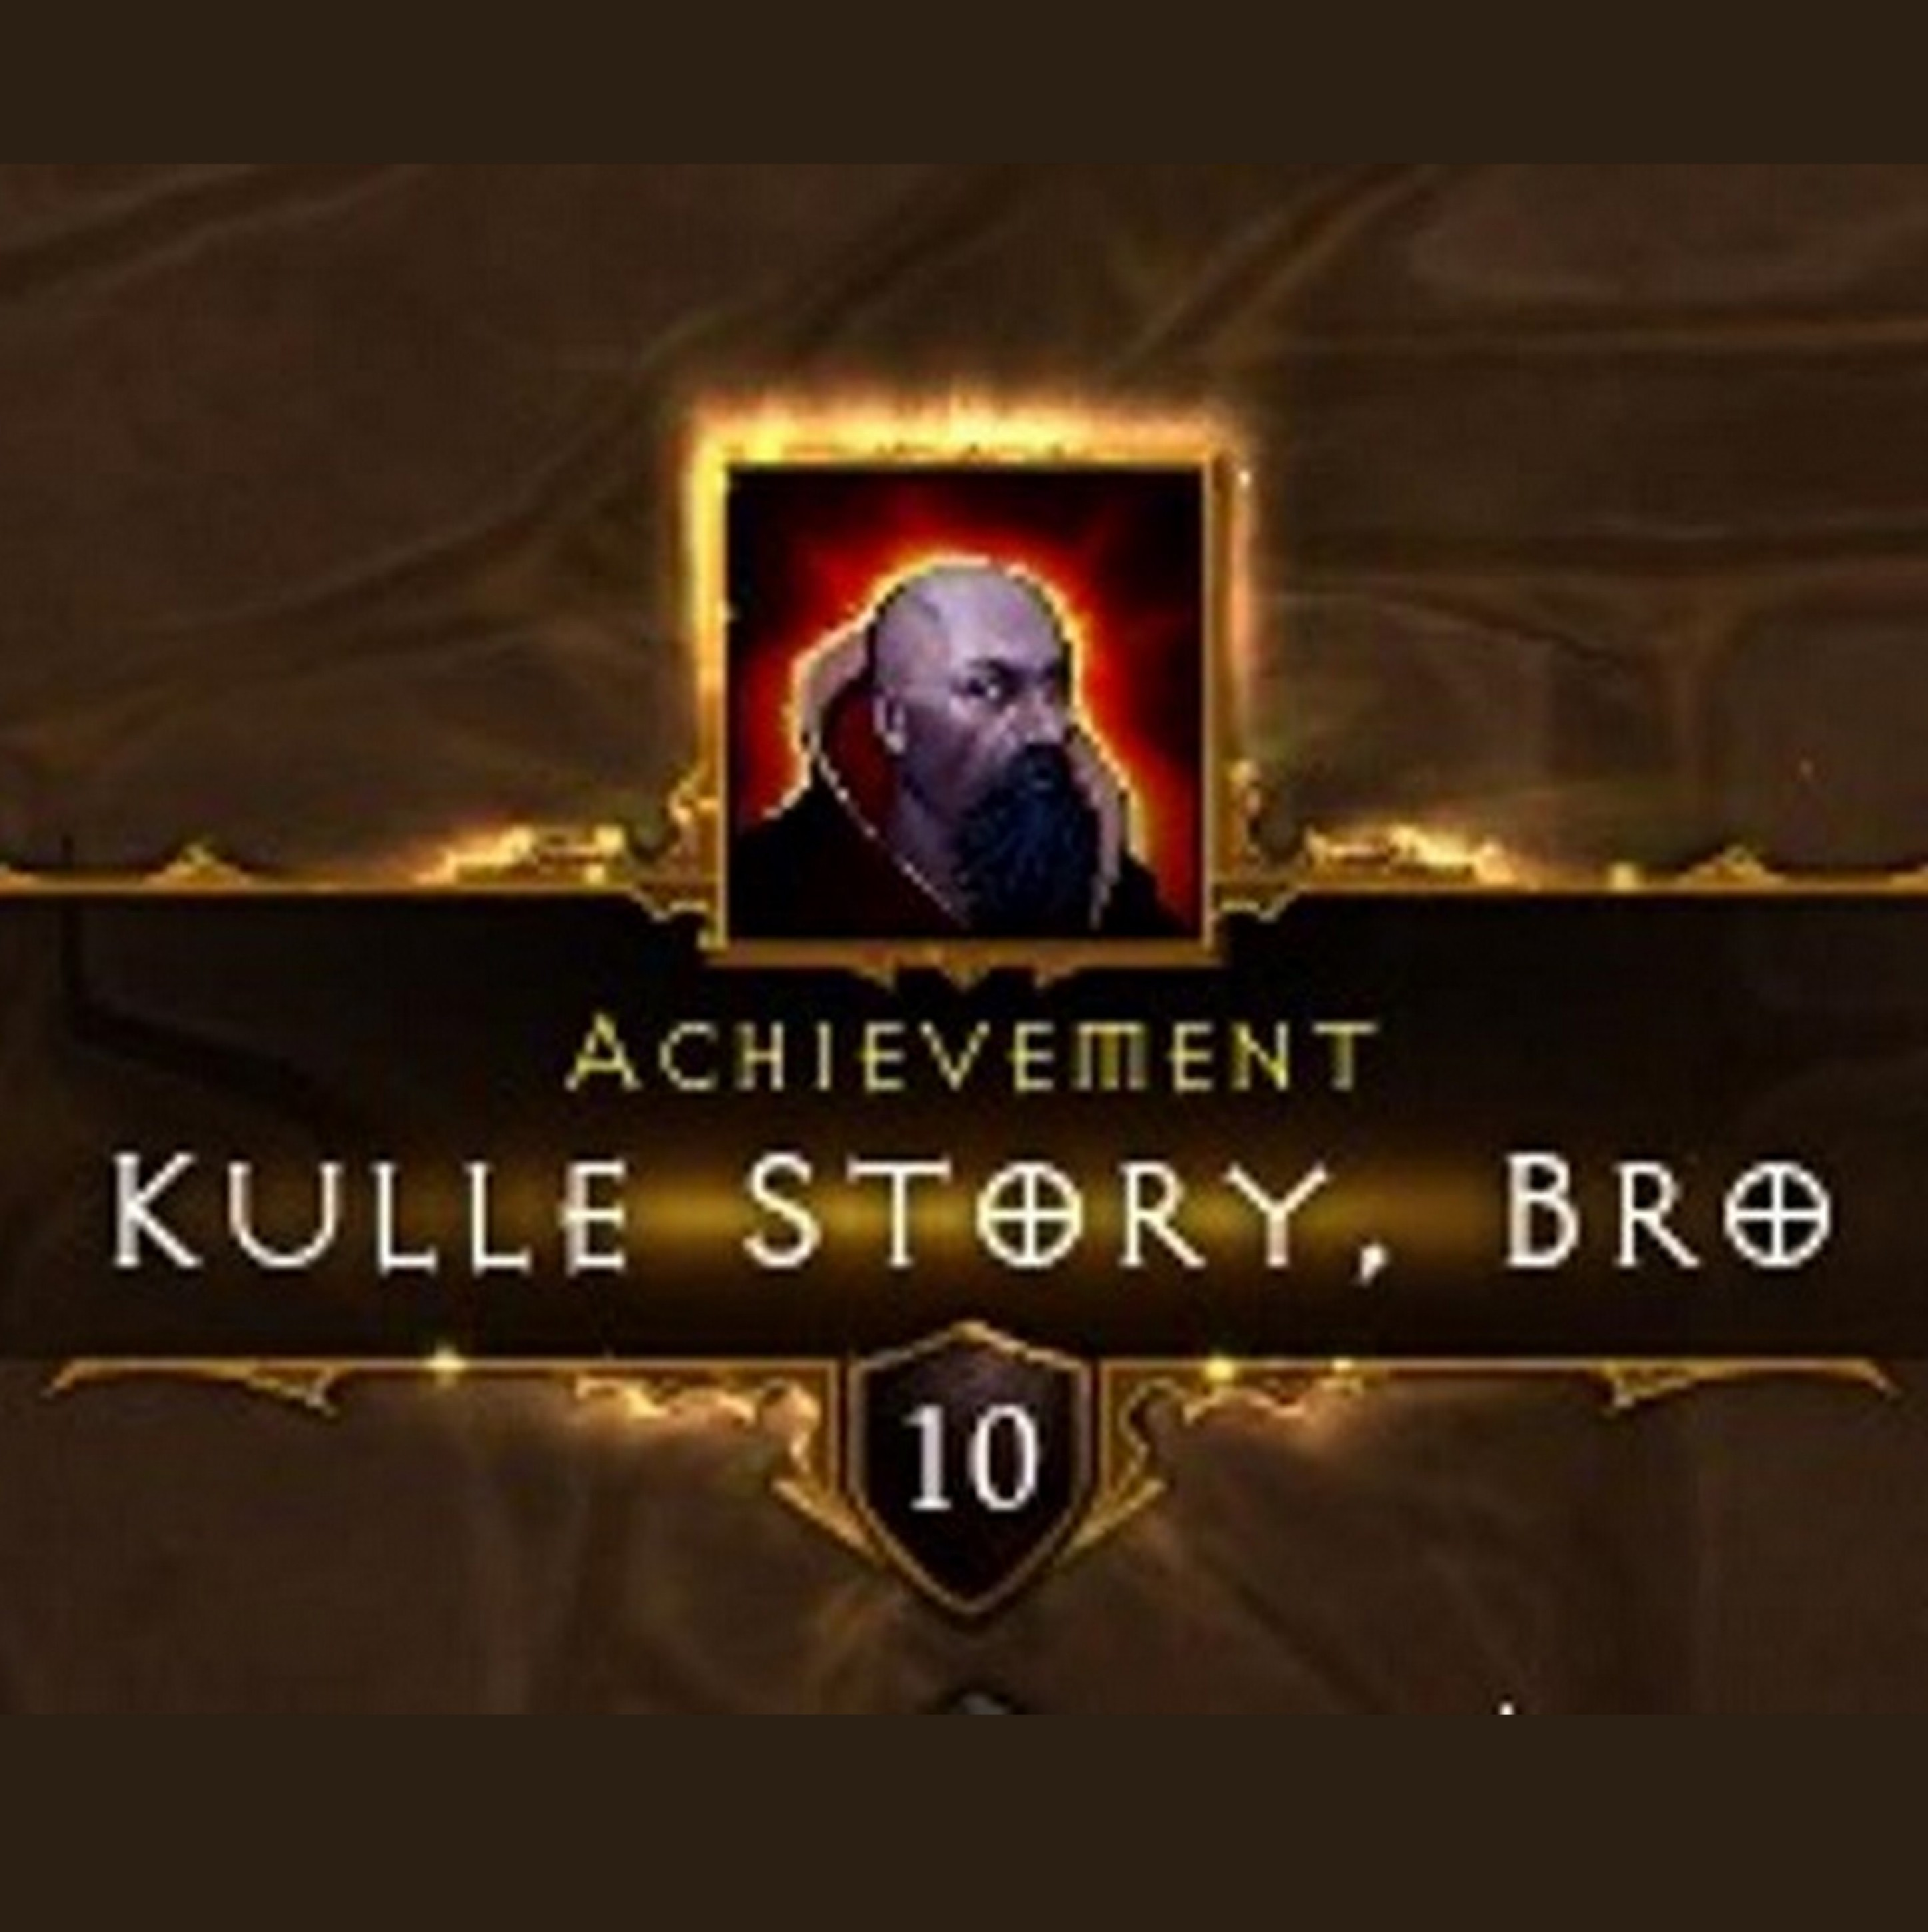 Kulle Story Bro - A Diablo 3 Podcast Episode 22